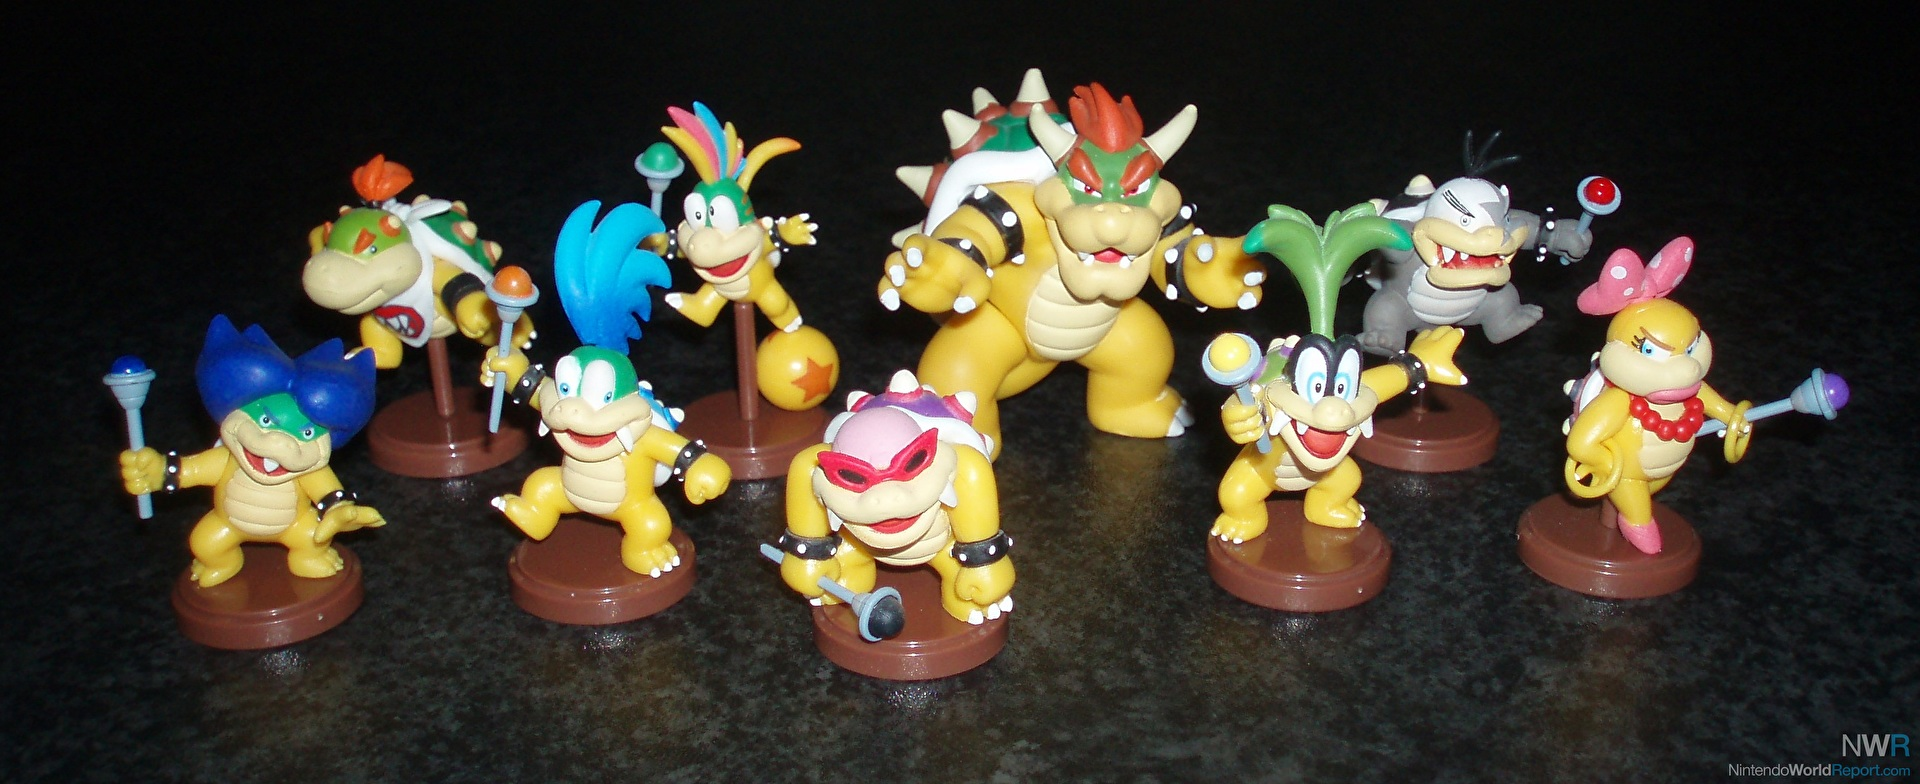 Dry Bowser Toys Images amp Pictures Becuo